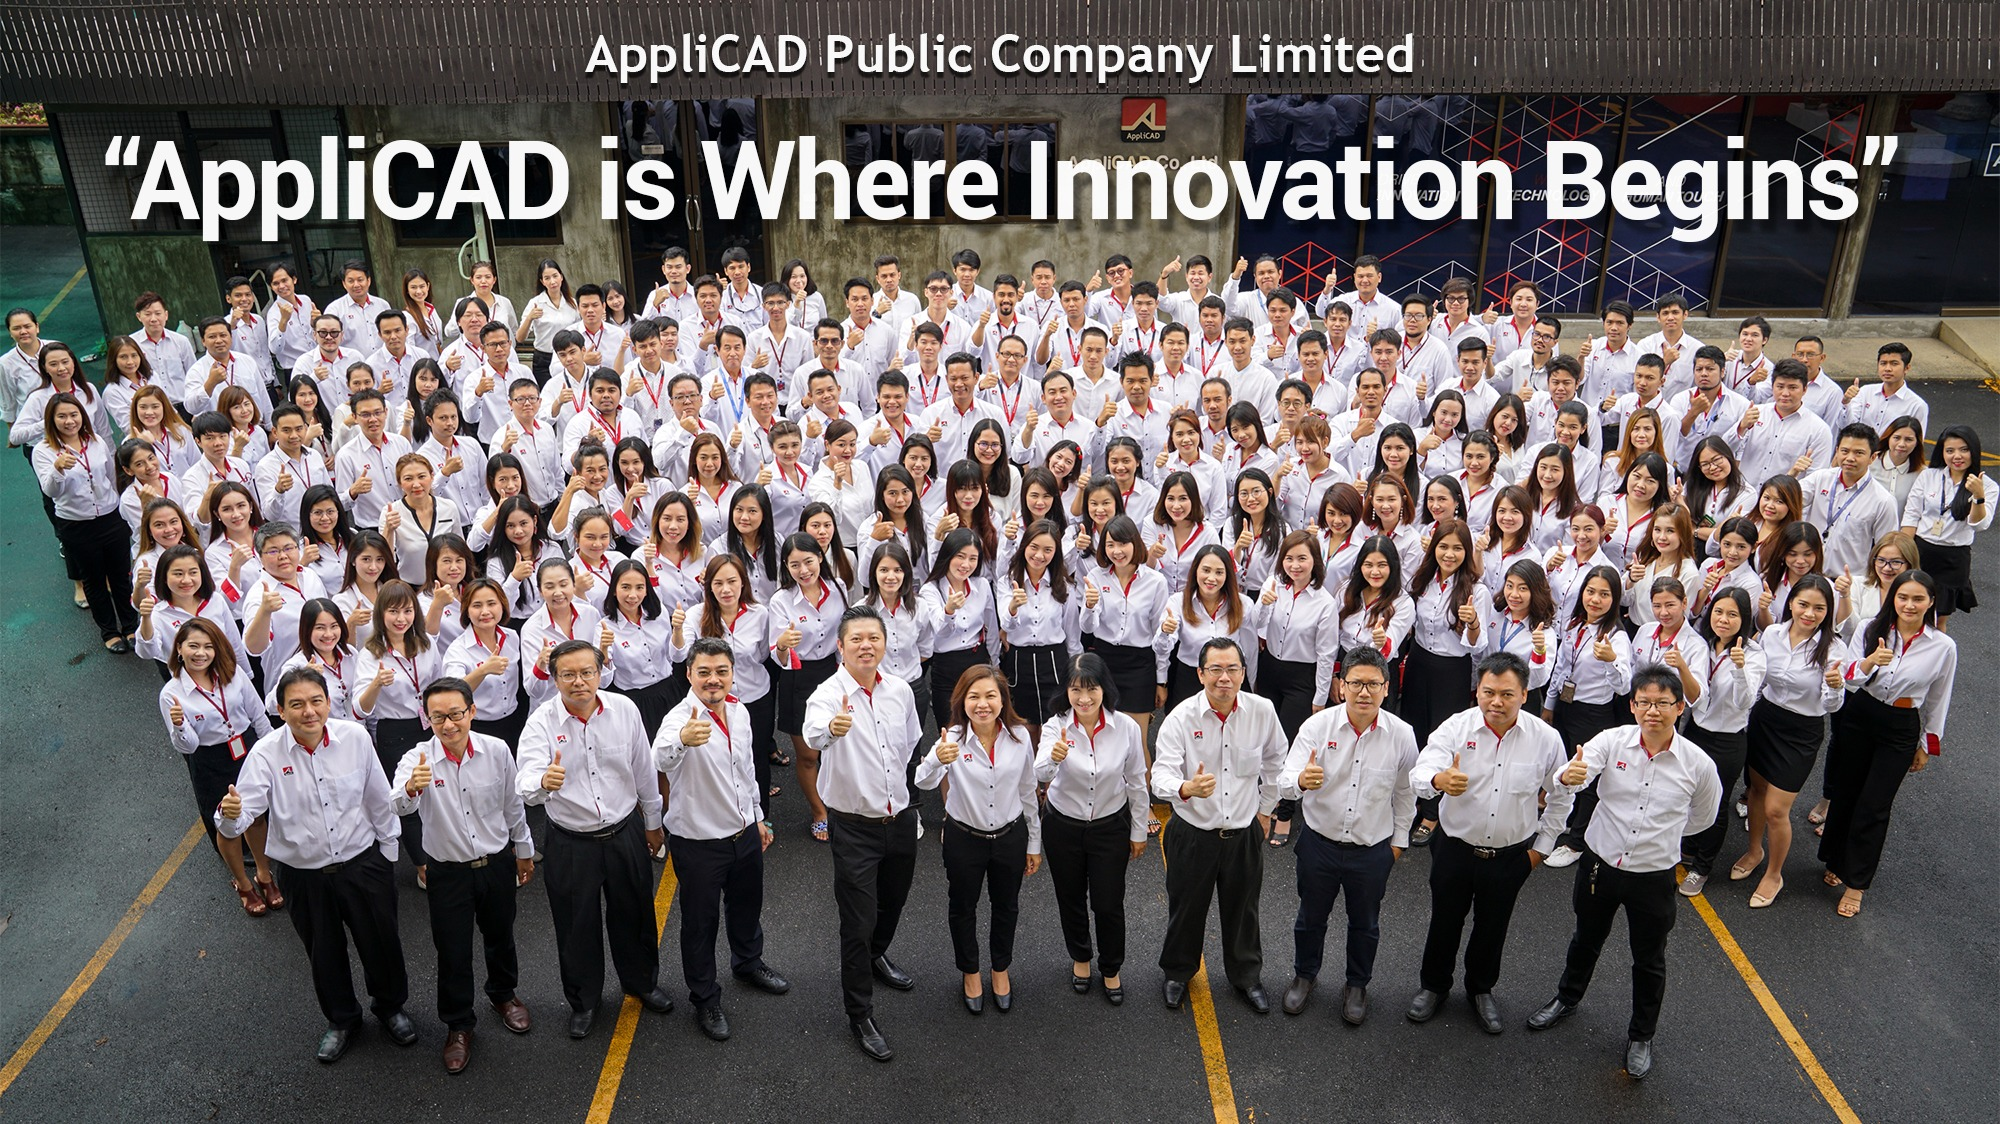 AppliCAD is Where Innovation Begins